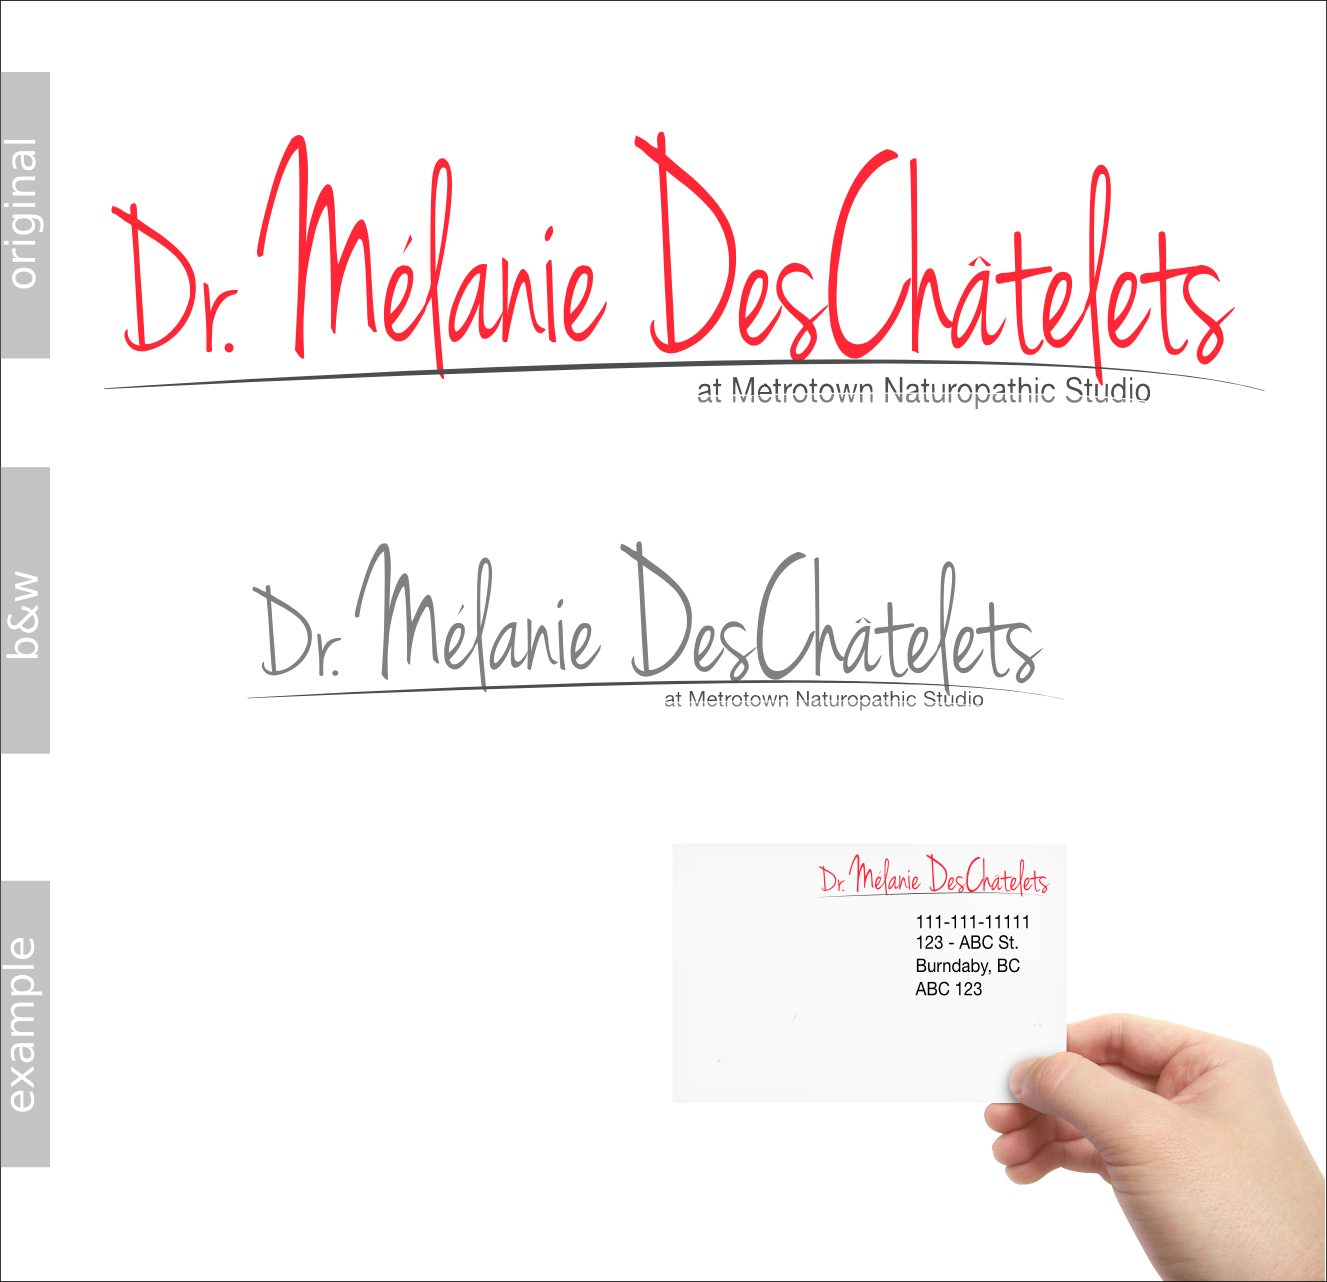 Logo Design by Andrew Bertram - Entry No. 1 in the Logo Design Contest Artistic Logo Design for Dr Mélanie DesChâtelets.